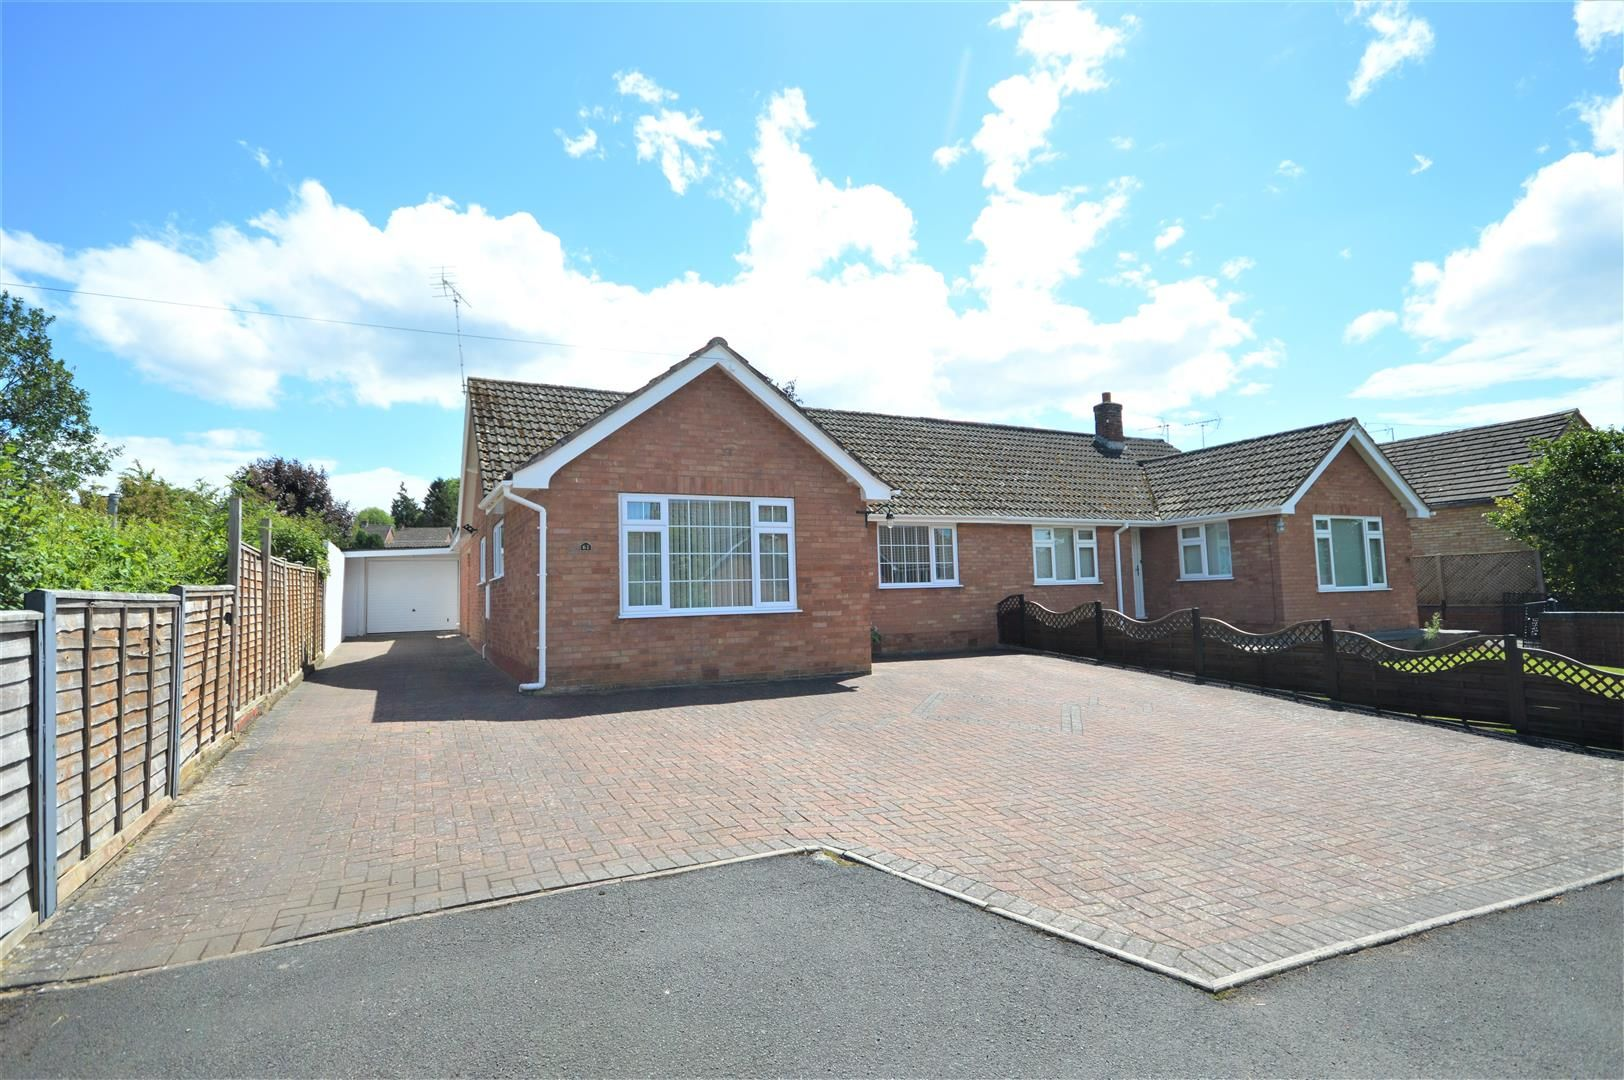 2 bed semi-detached-bungalow for sale in Leominster  - Property Image 1